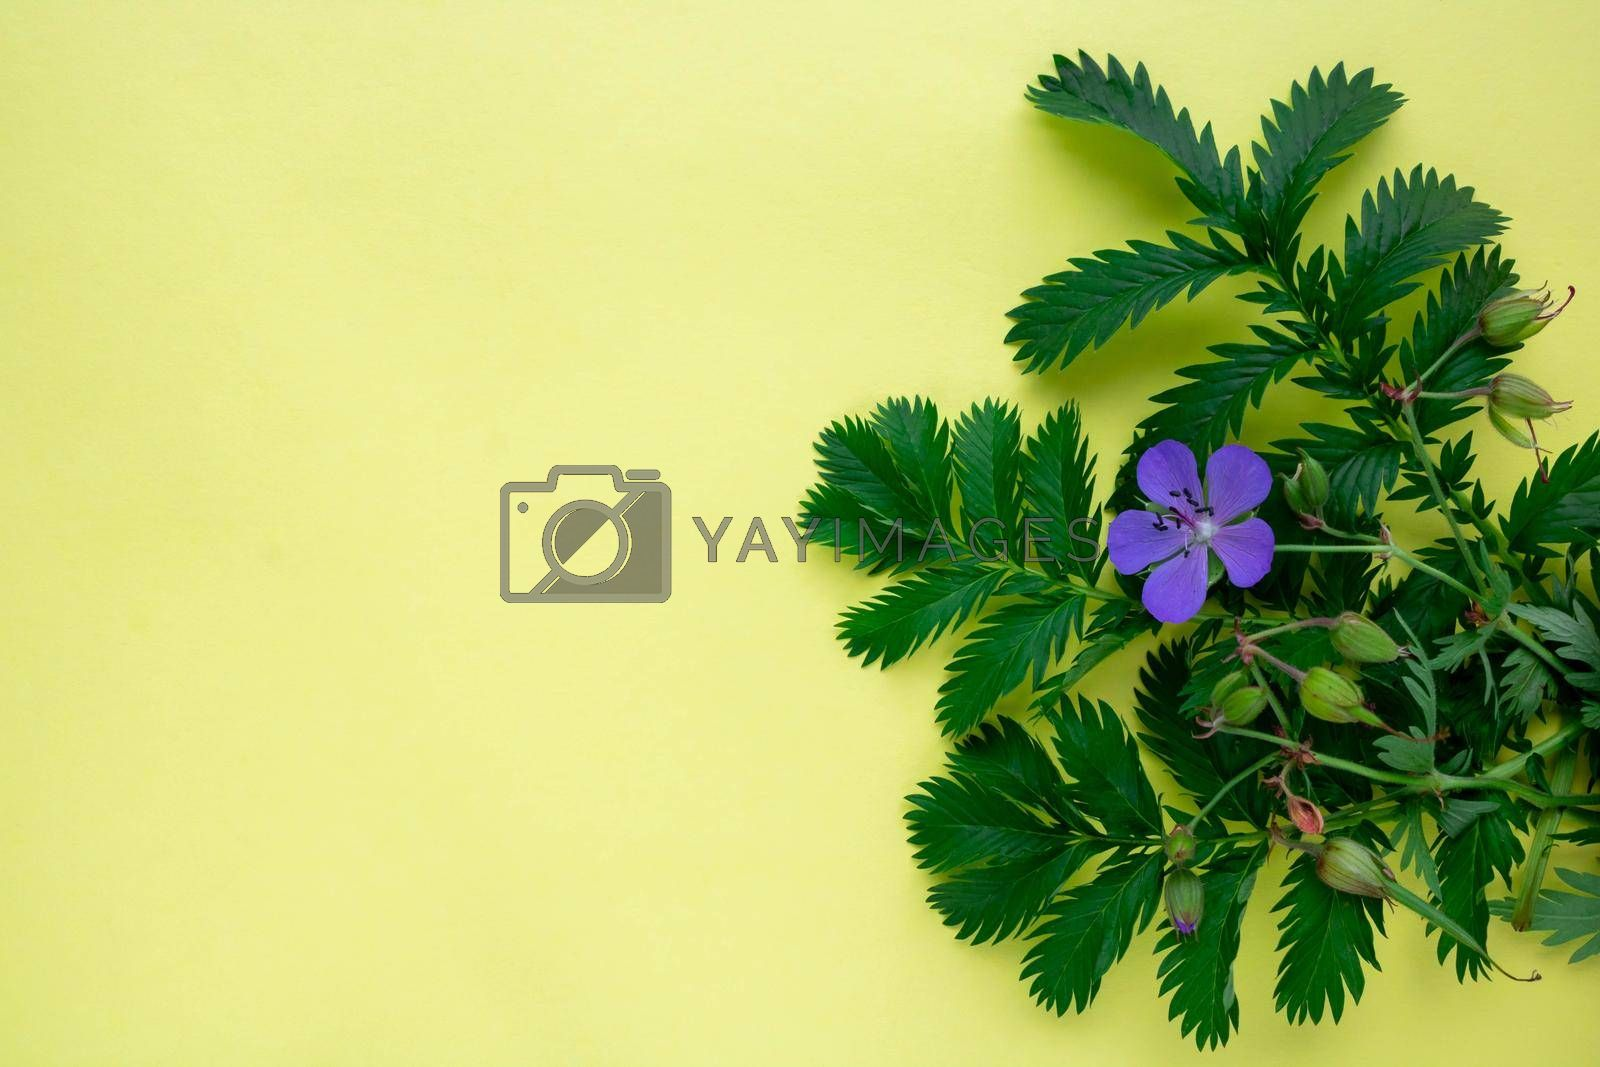 On a yellow background, the leaves of green grass lapchatki and a blue flower of meadow geranium.